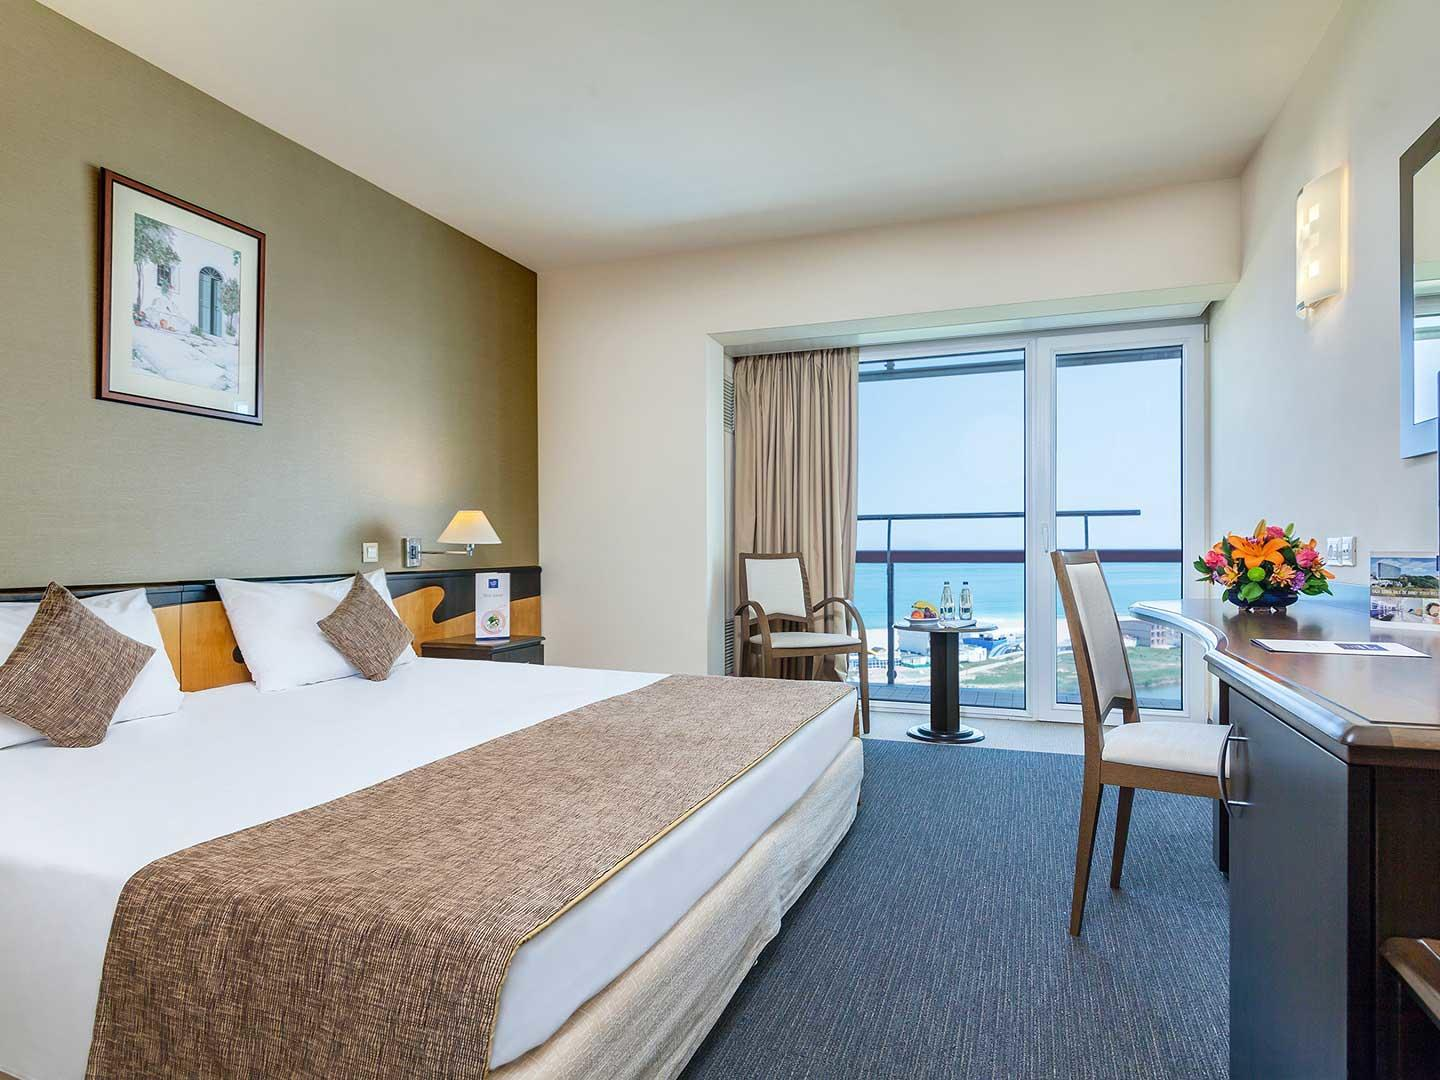 King Room la Ana Hotels Europa Eforie Nord